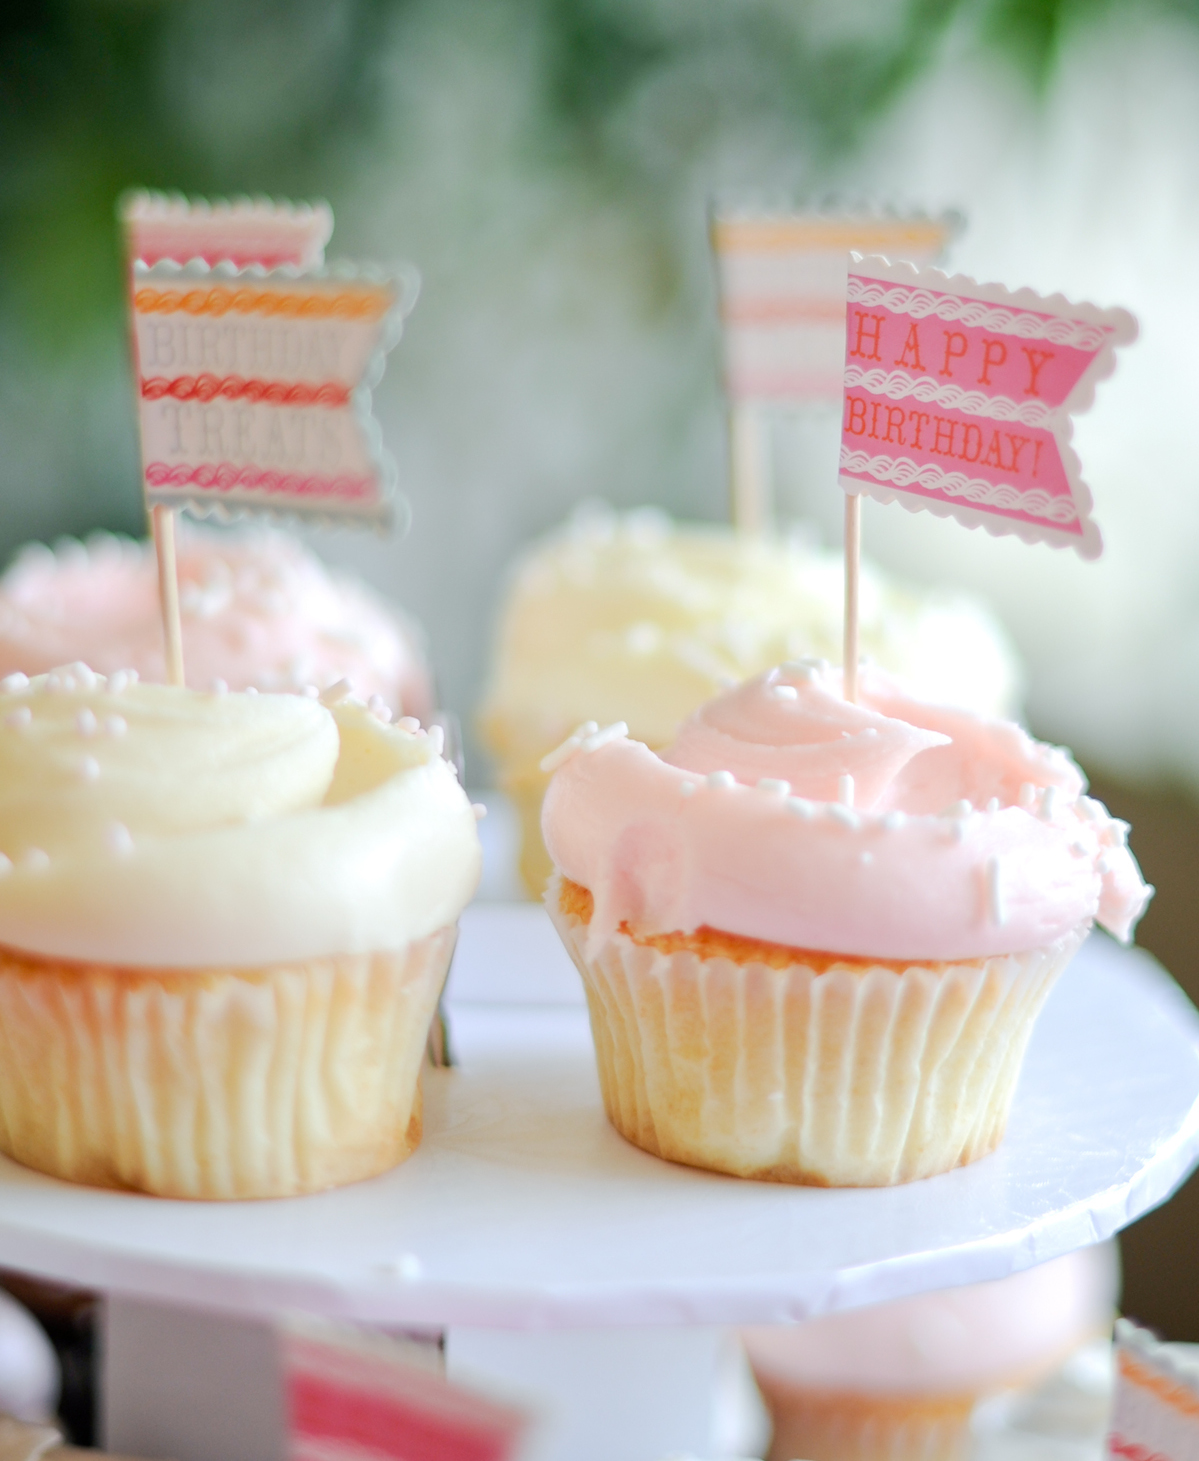 Happy Birthday Cupcake Toppers // FashionableHostess.com